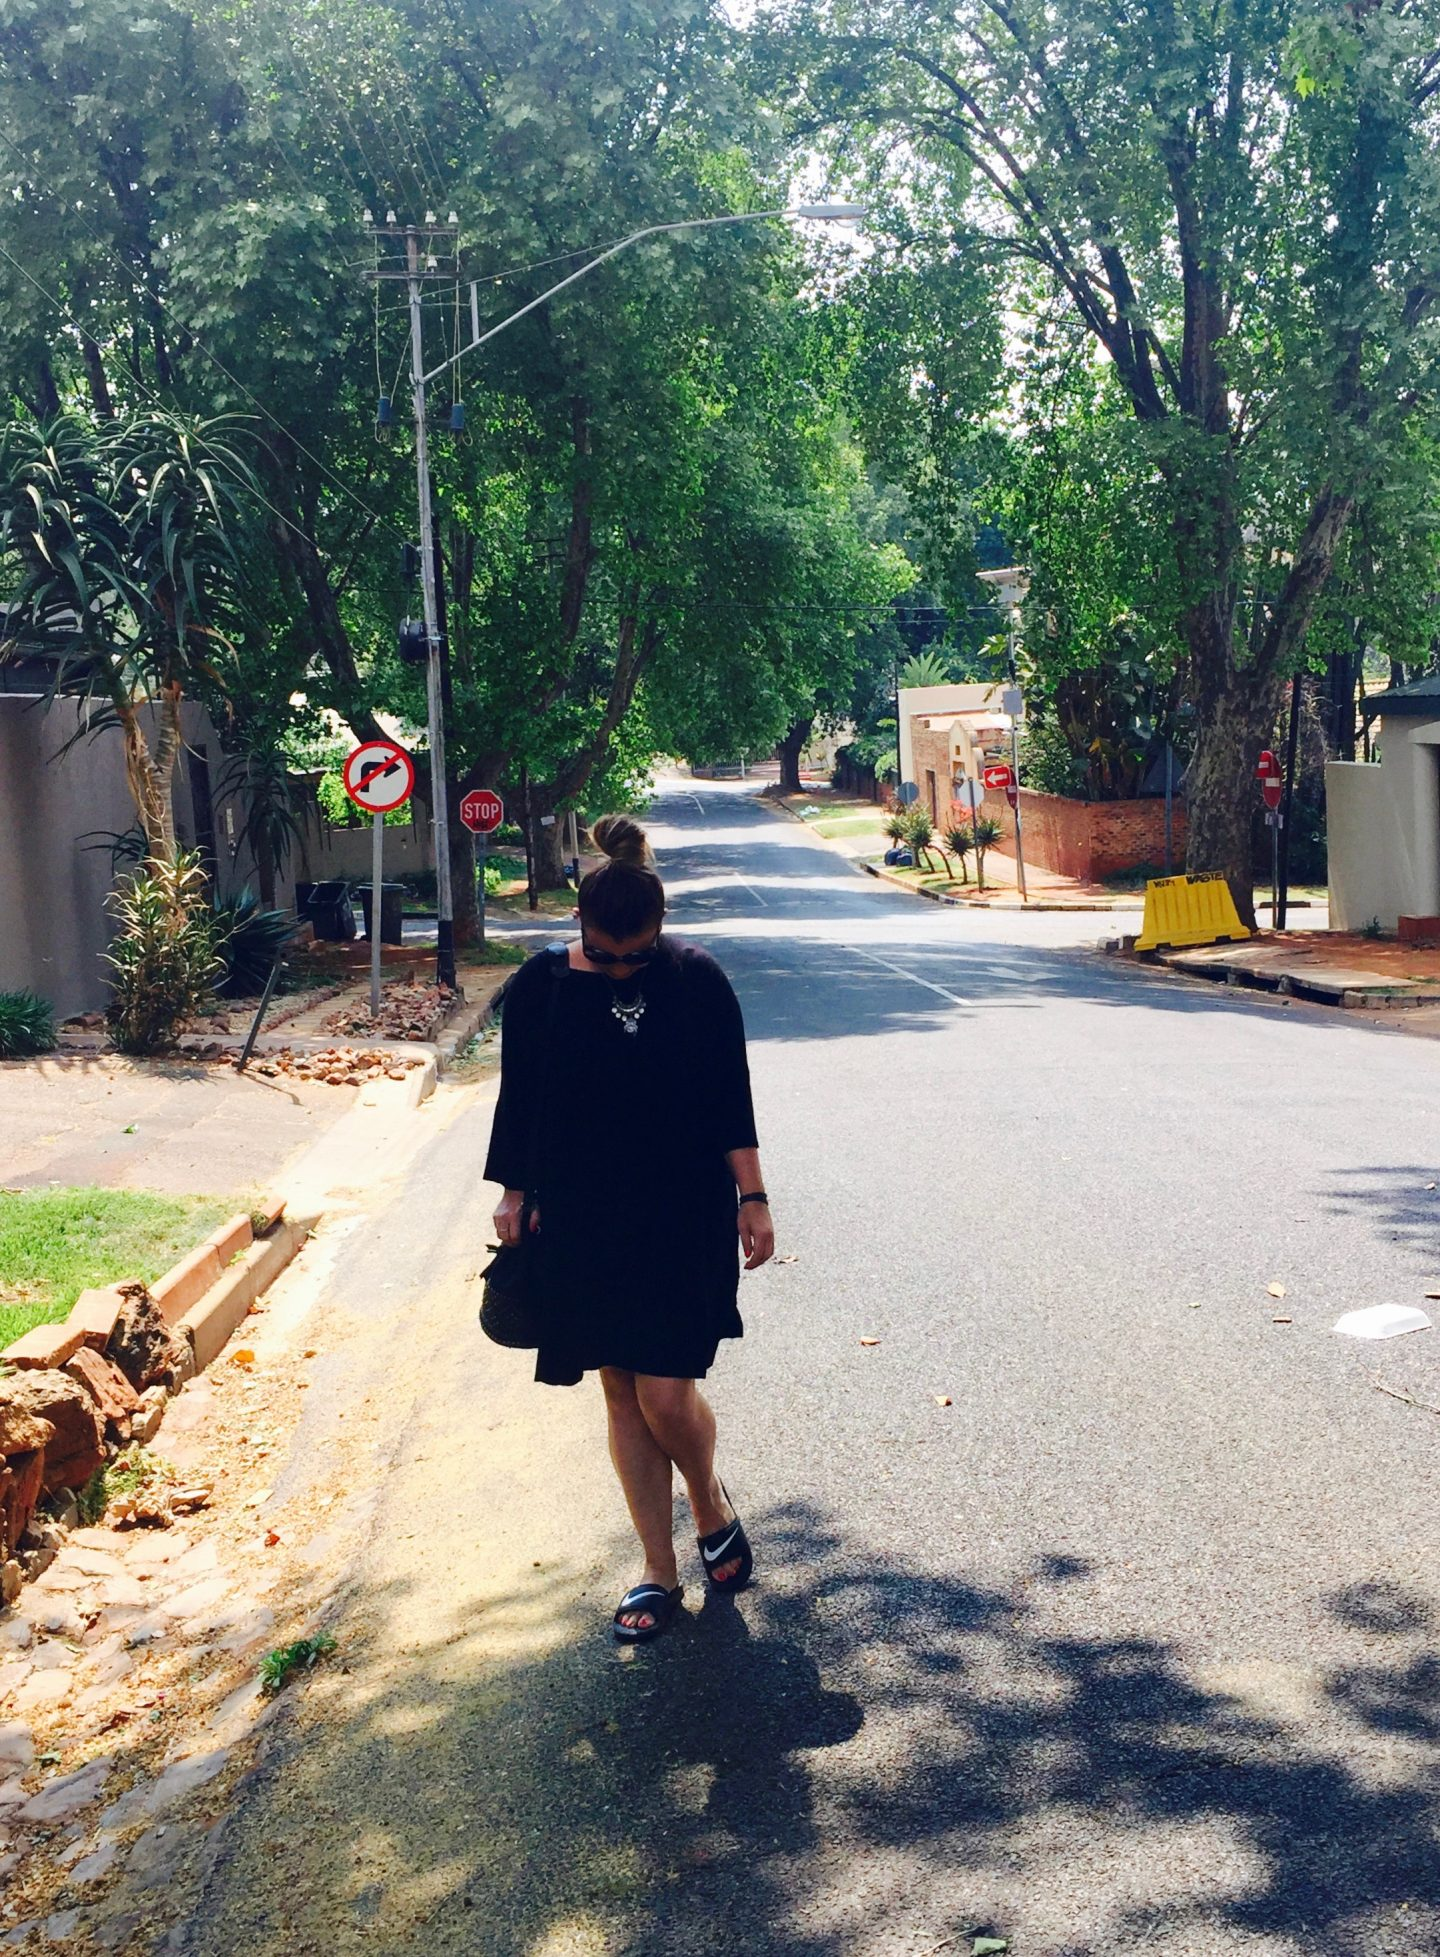 Streets of Melville